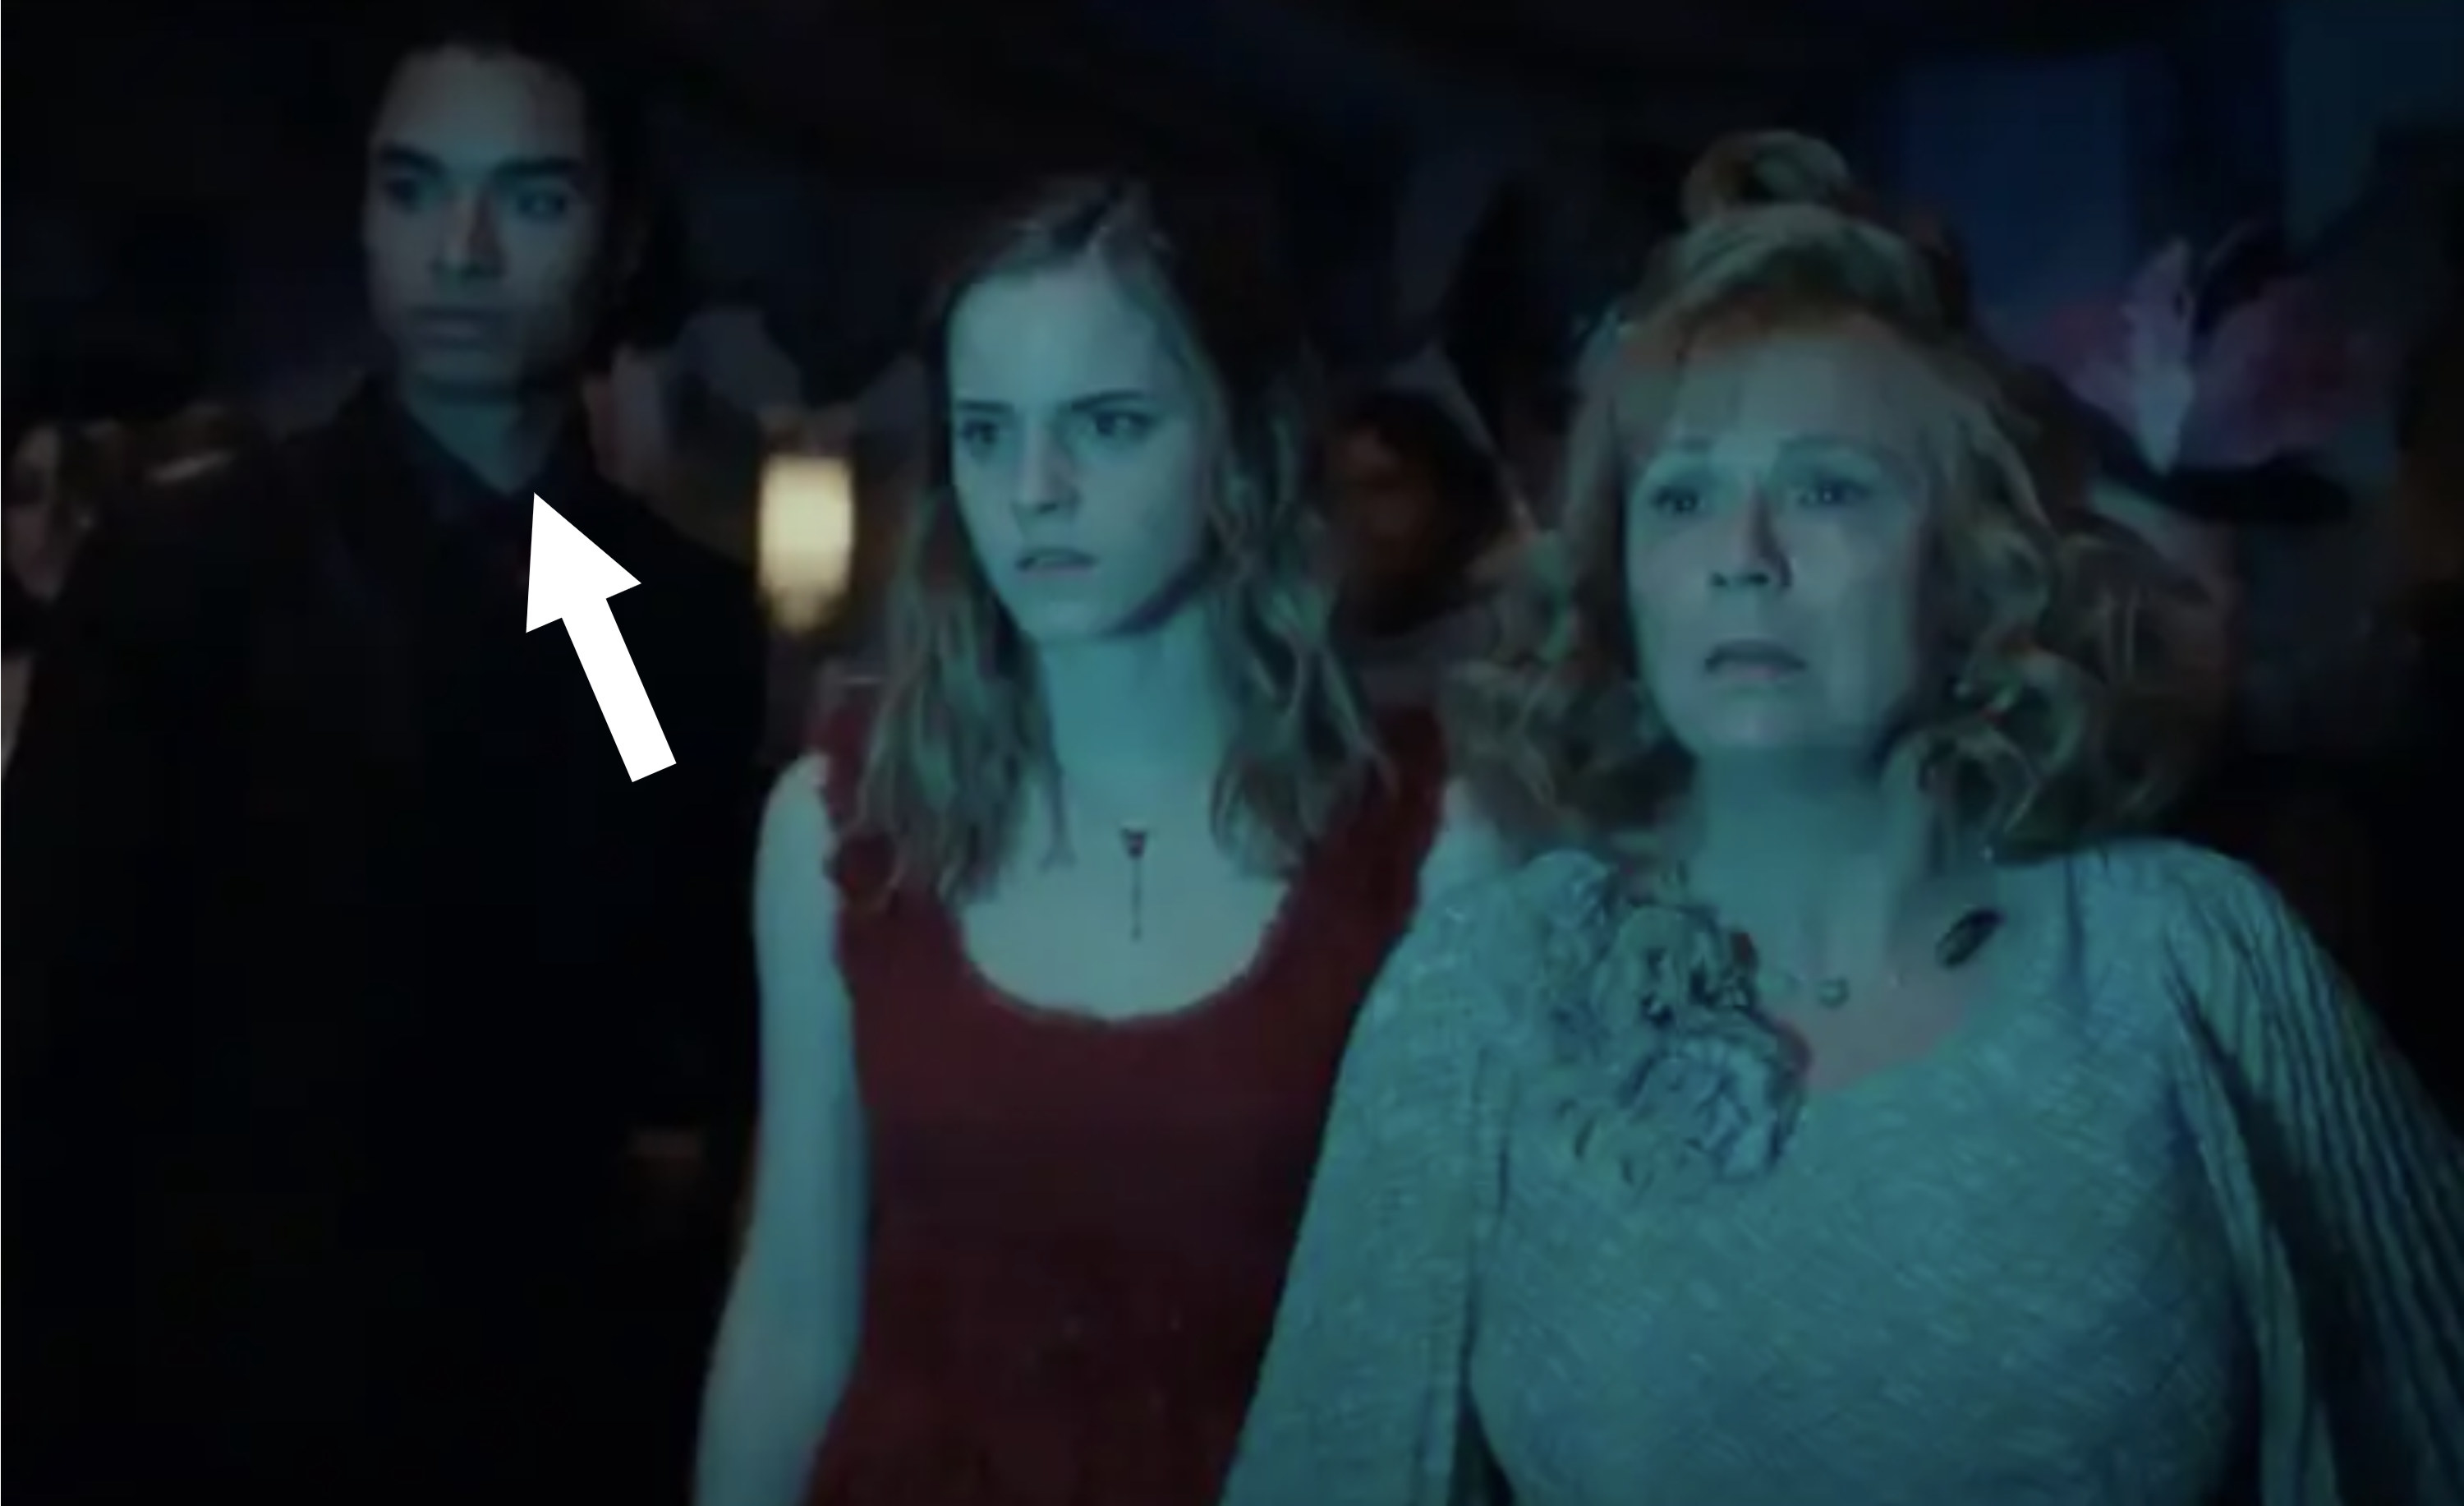 an arrow pointing to Regé-Jean Page in the background at the wedding behind Hermione and Molly